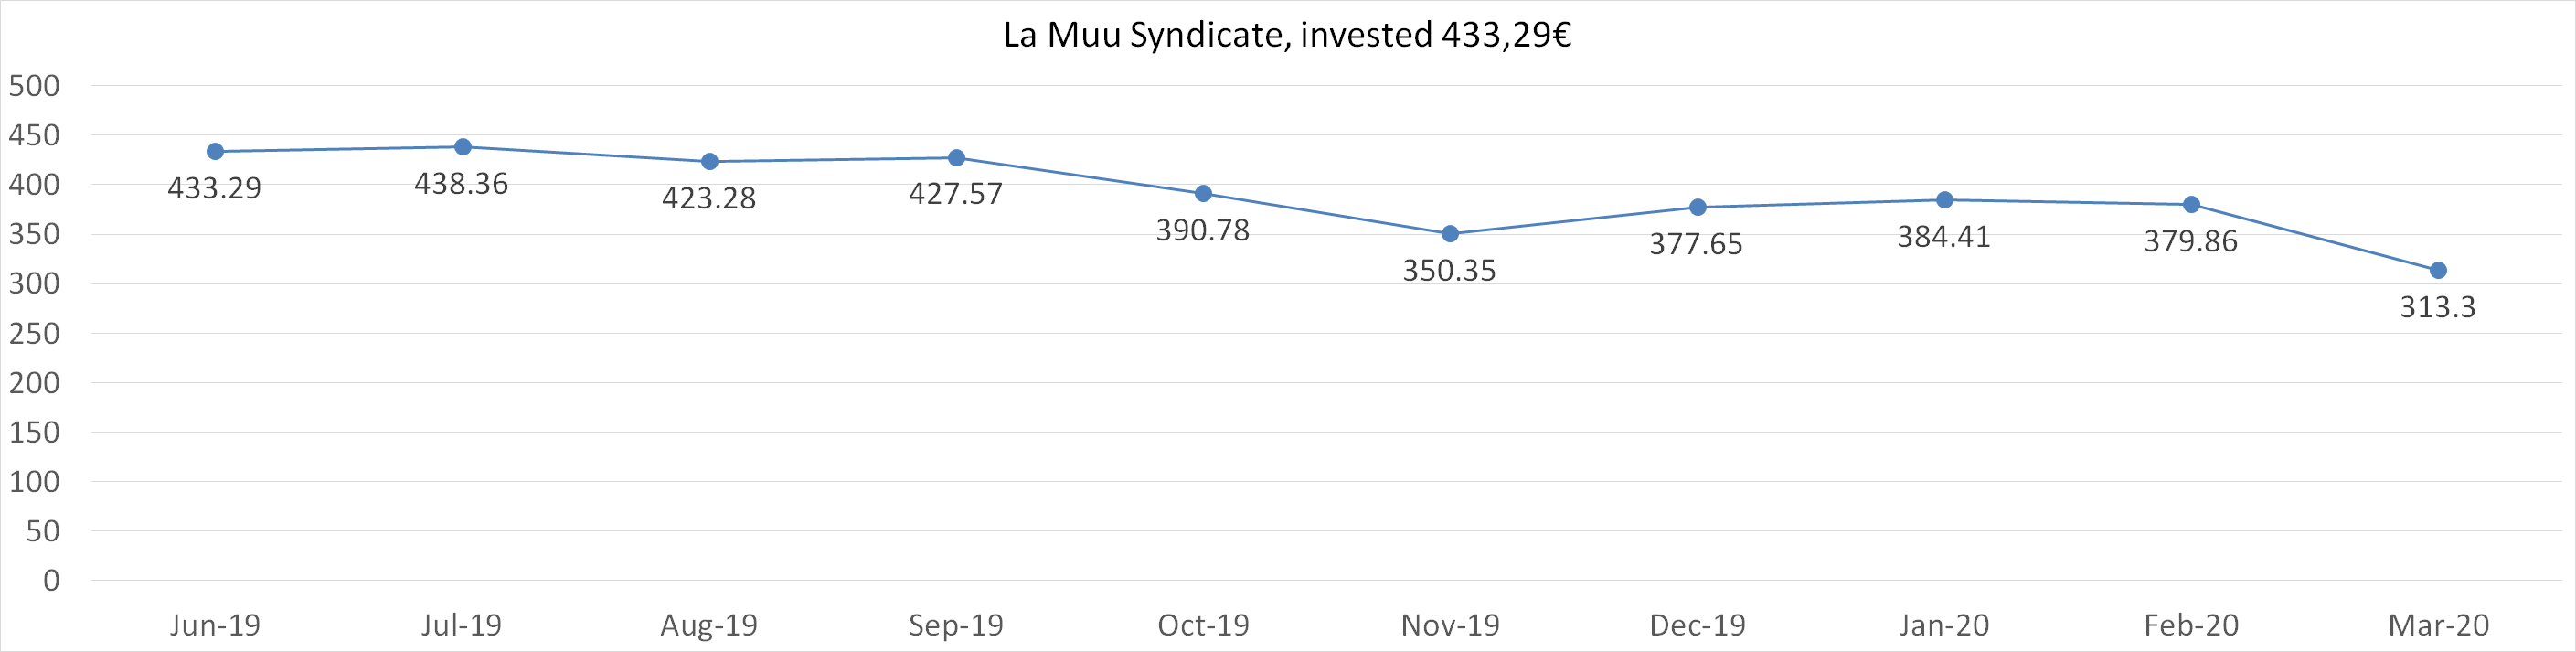 La Muu syndicate, invested 433,29 worth in march 2020